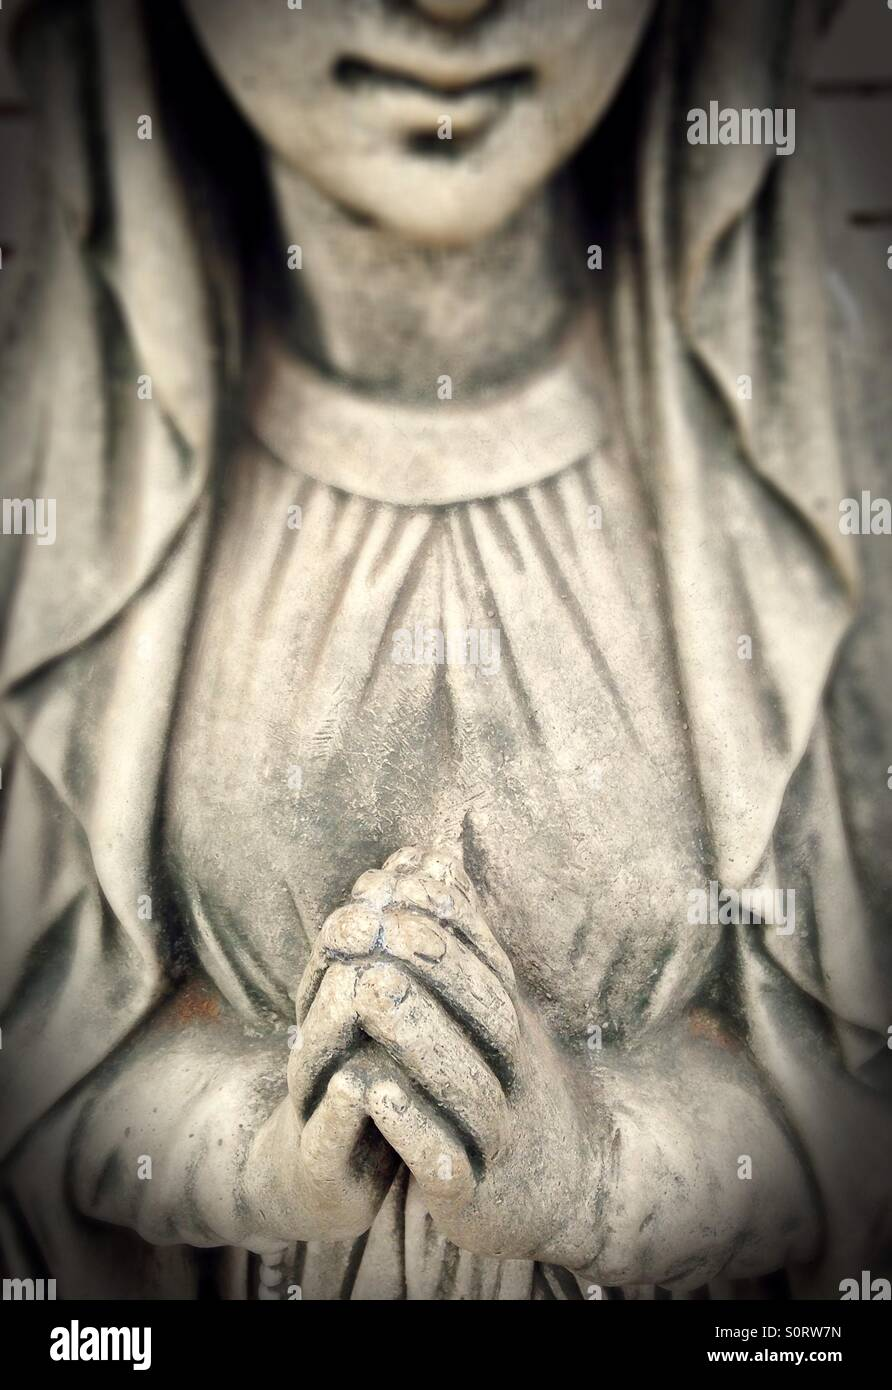 A statue of a woman with hands folded in prayer. - Stock Image